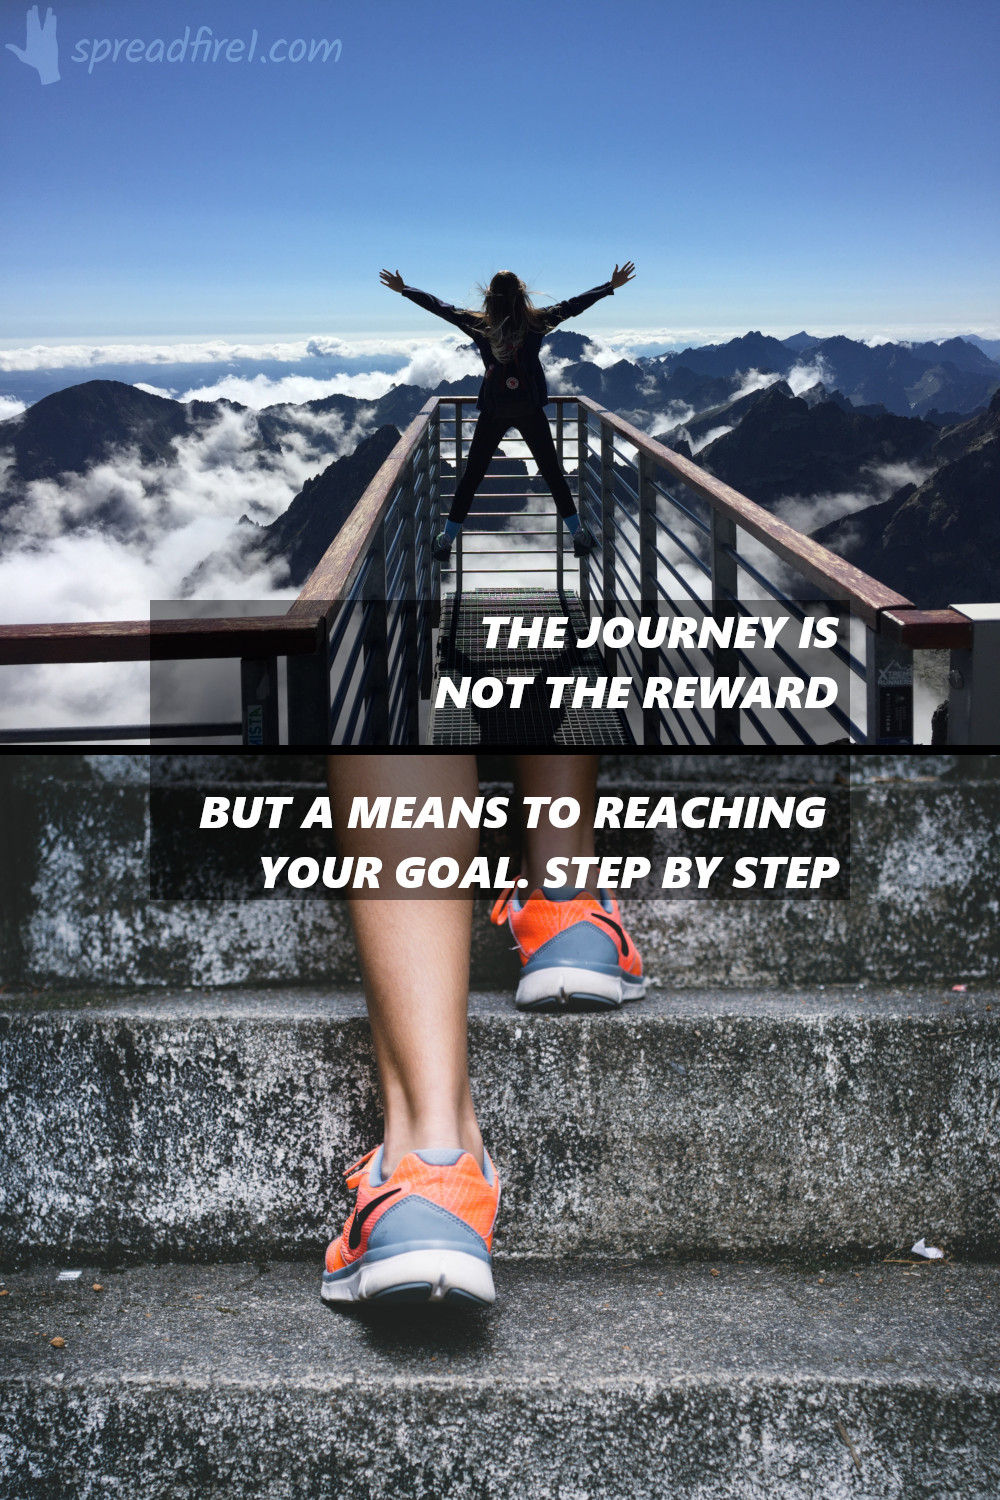 The journey is not the reward but a means to reaching your goal. Step by step.